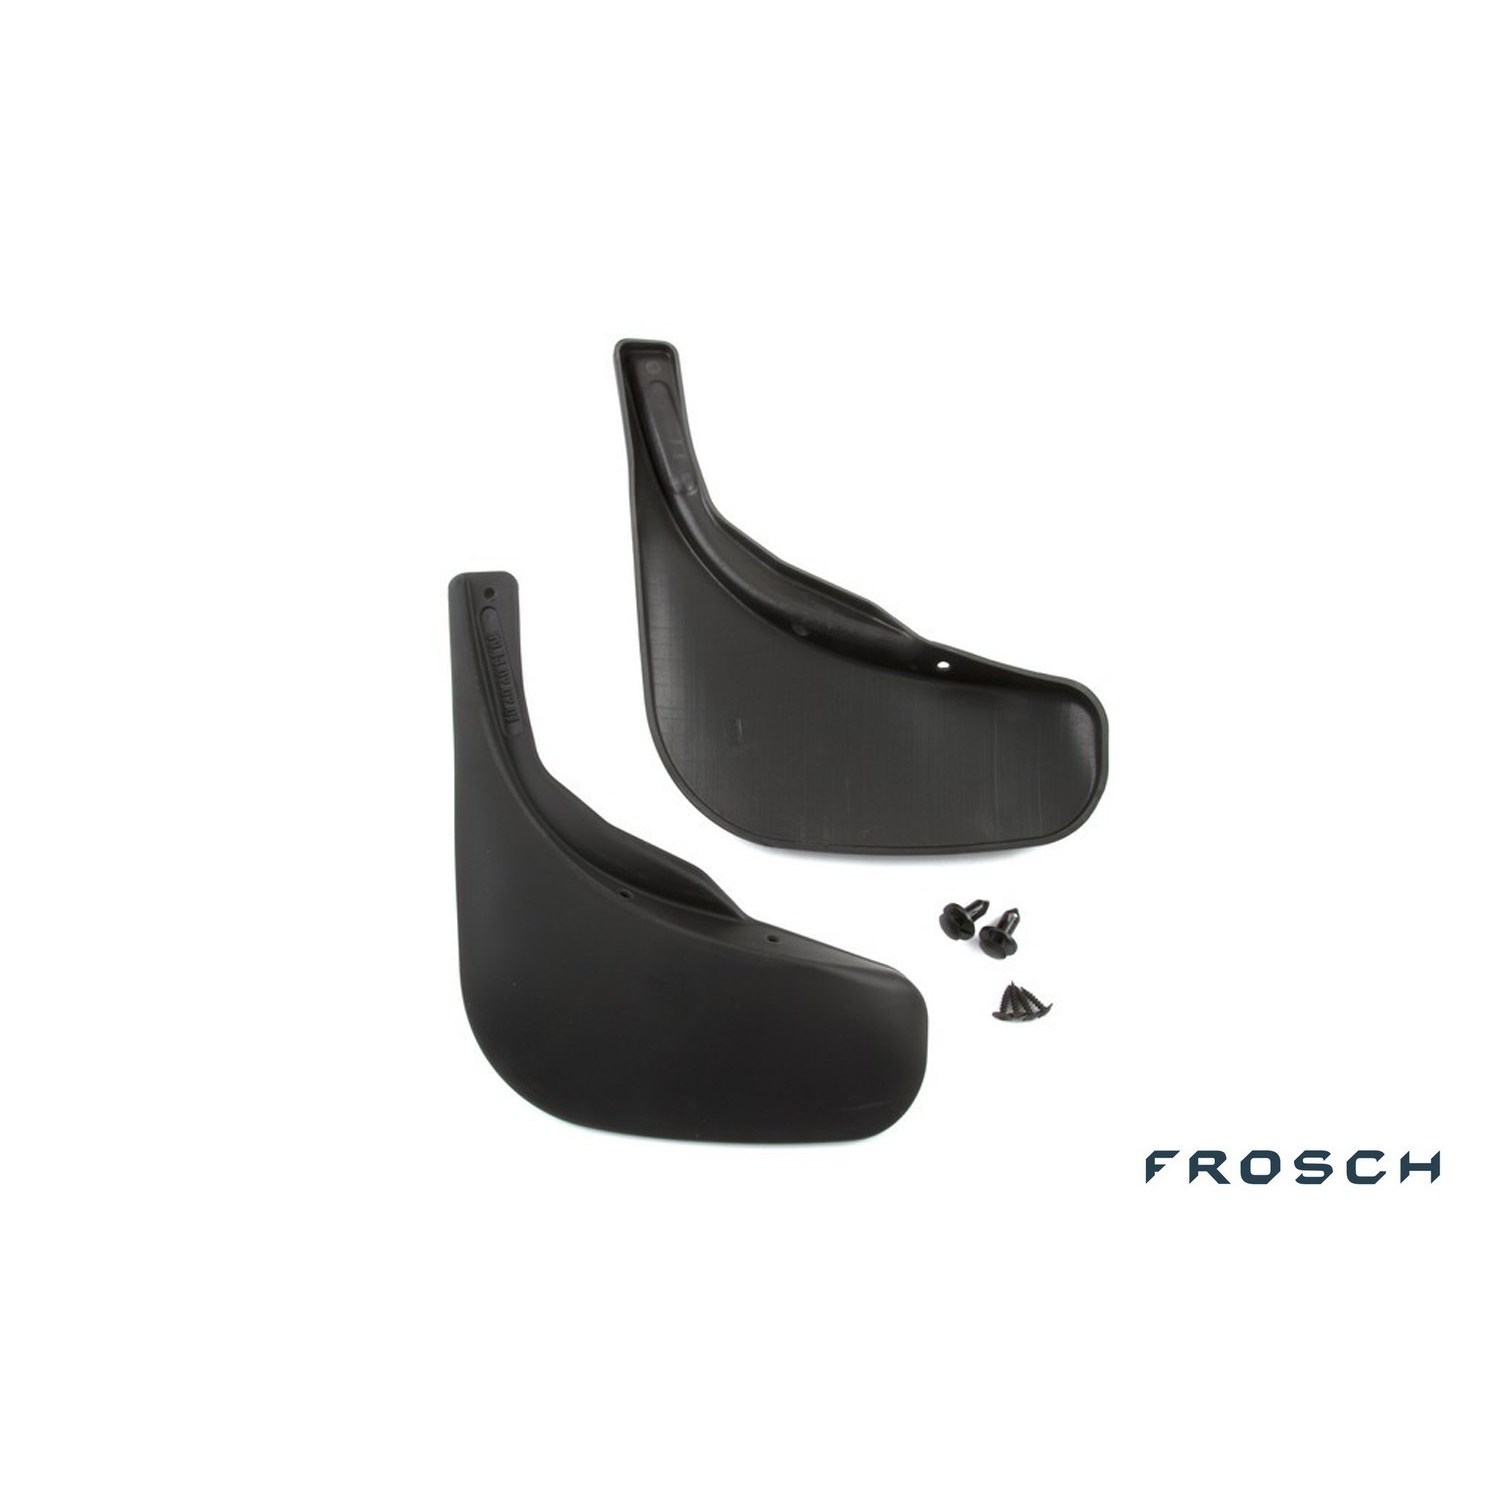 Rear mud flaps for GREAT WALL HOVER M2, 2013-> implement. 2 PCs In the package NLF.59.14.E13